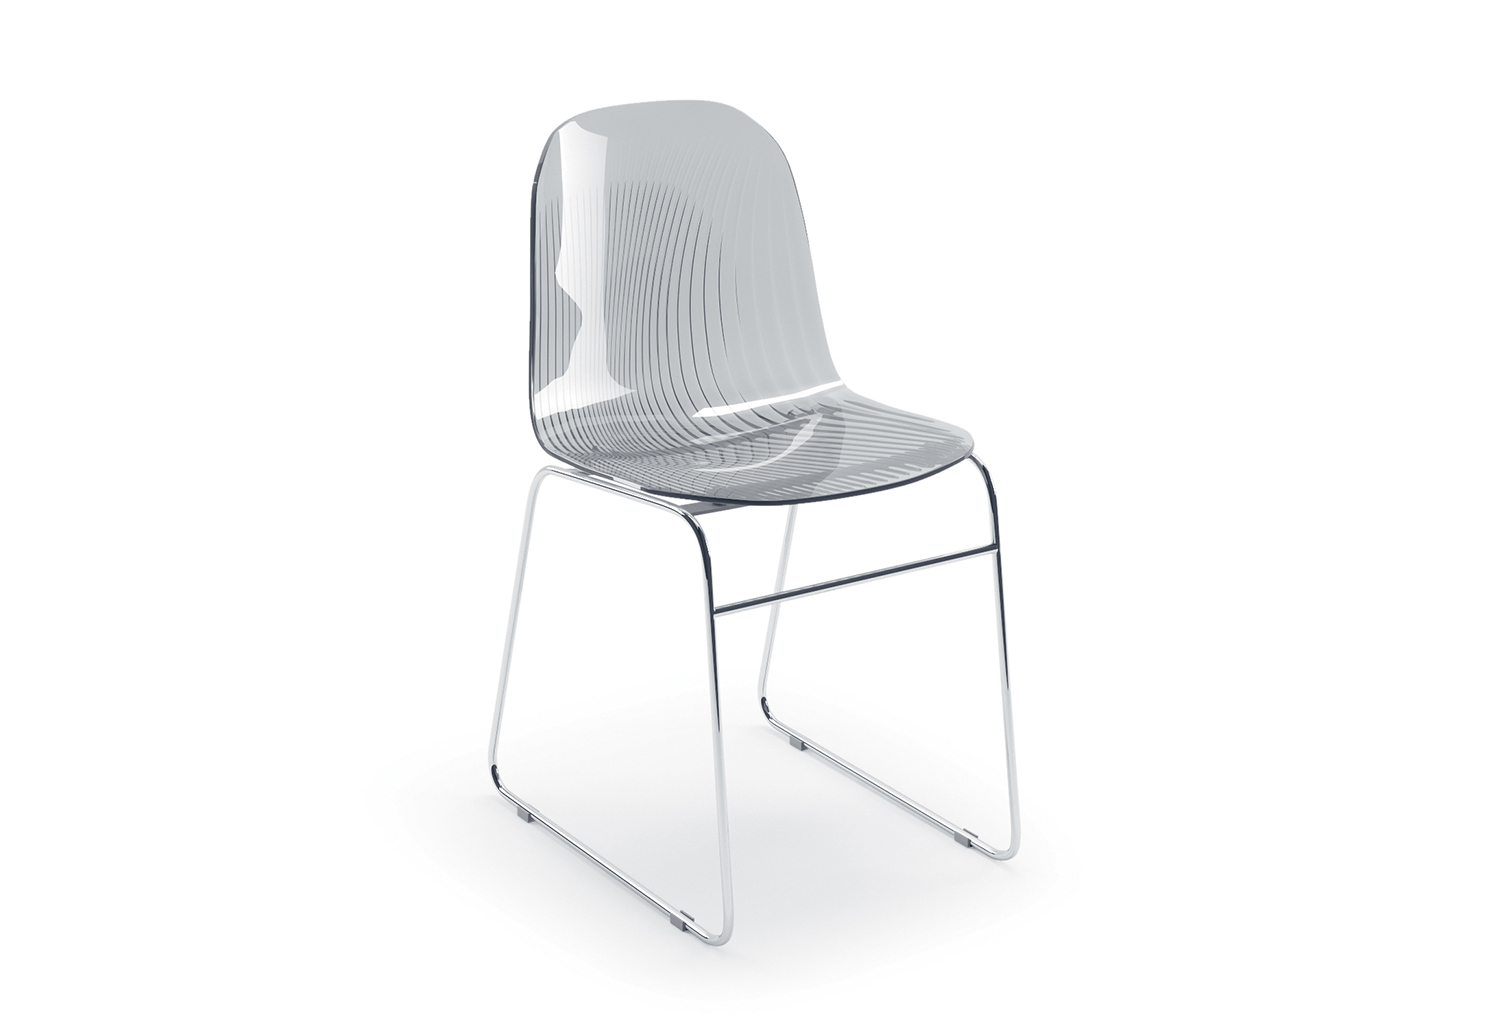 The chair seat is made of styrene plastic, a sturdy material here with decorative stripes